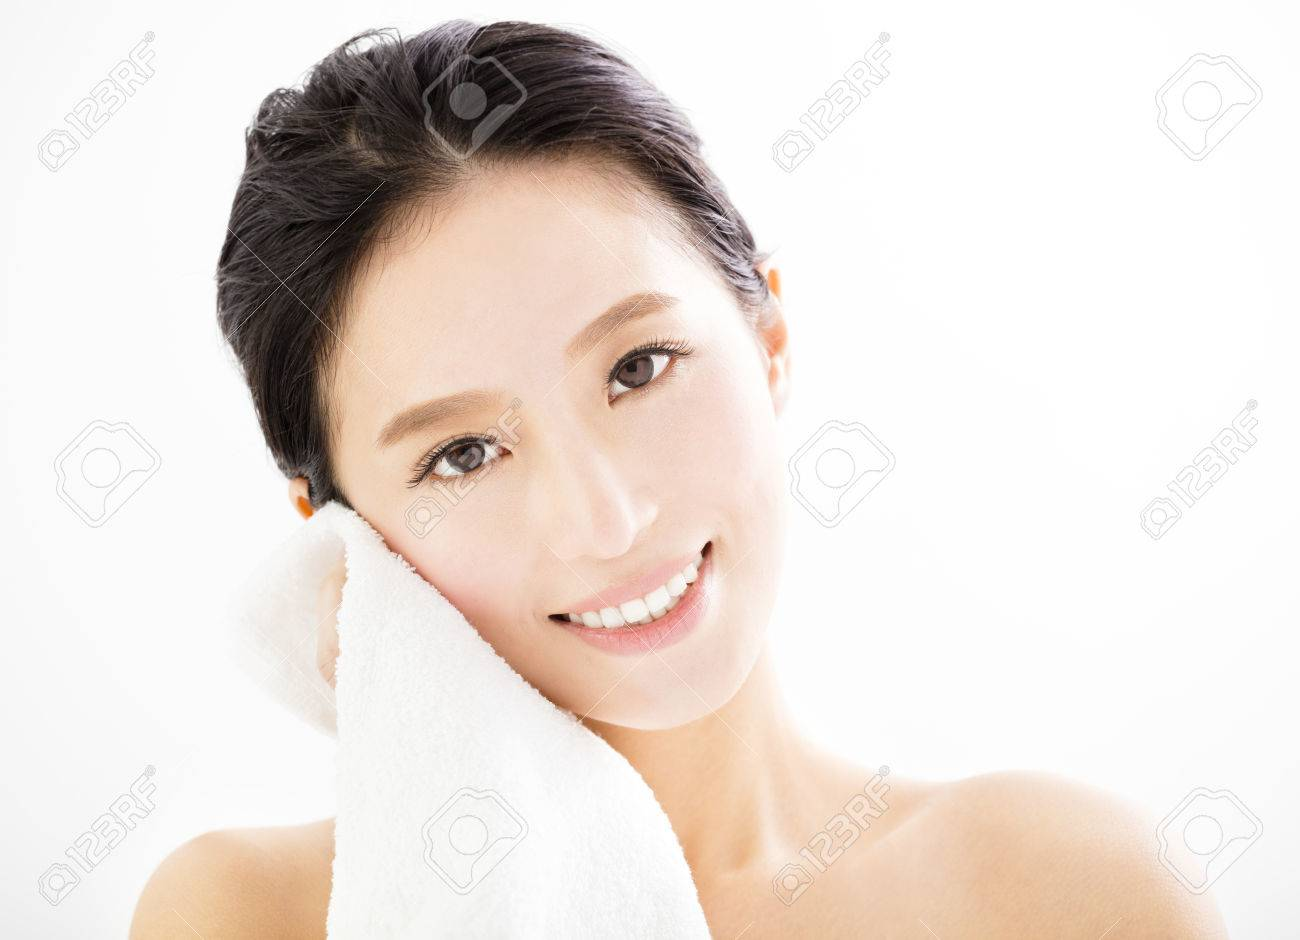 young woman cleaning her face with towel - 53696986